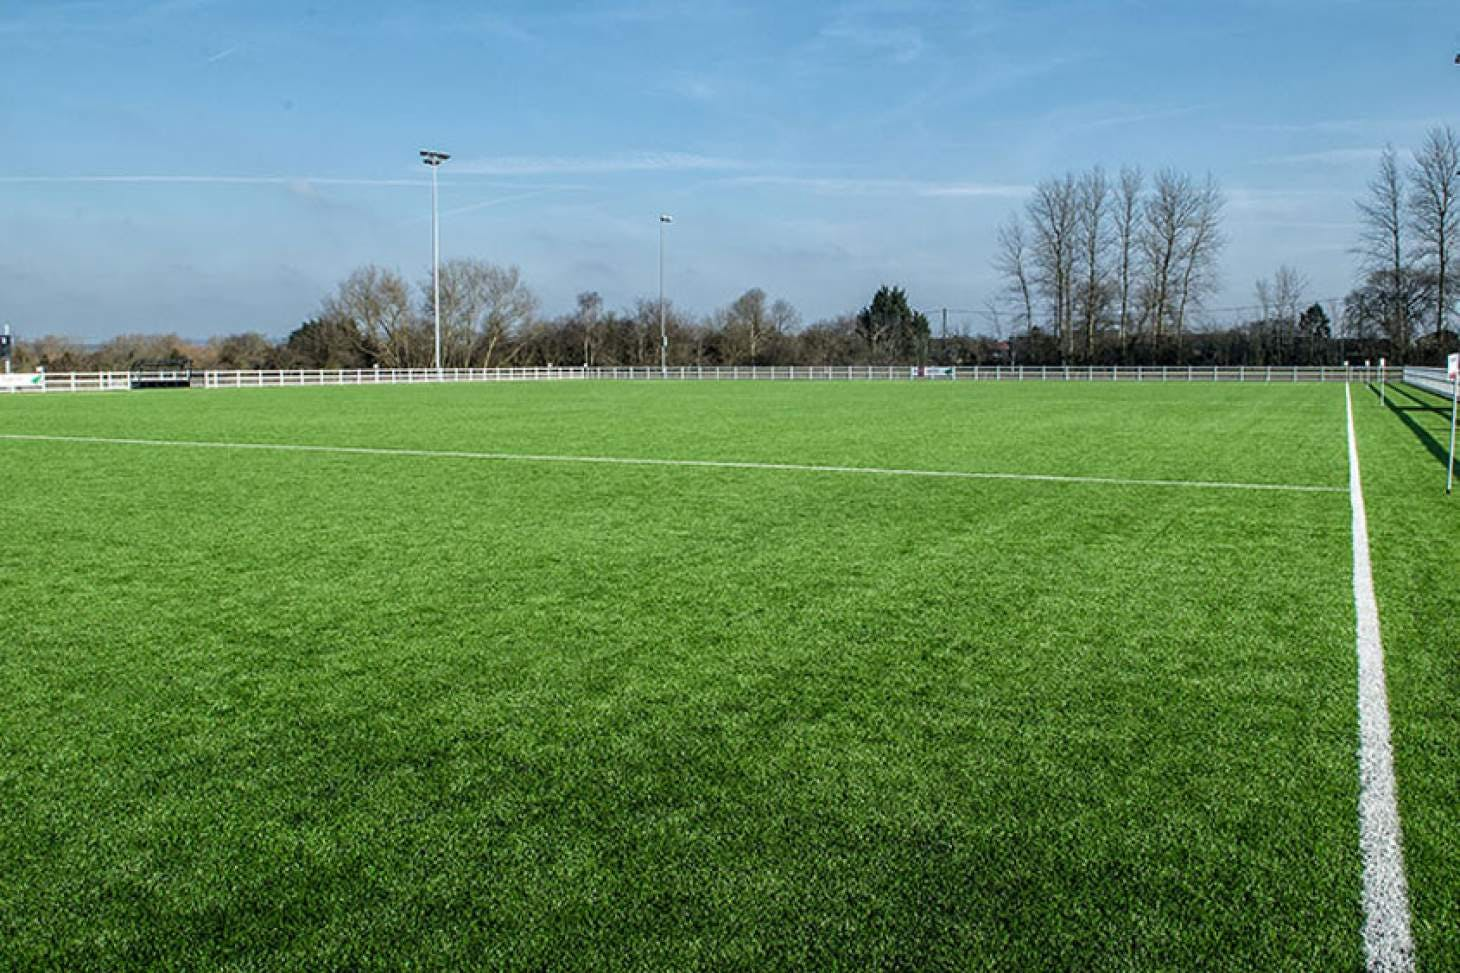 PlayFootball Penrith 5 a side | 3G Astroturf football pitch